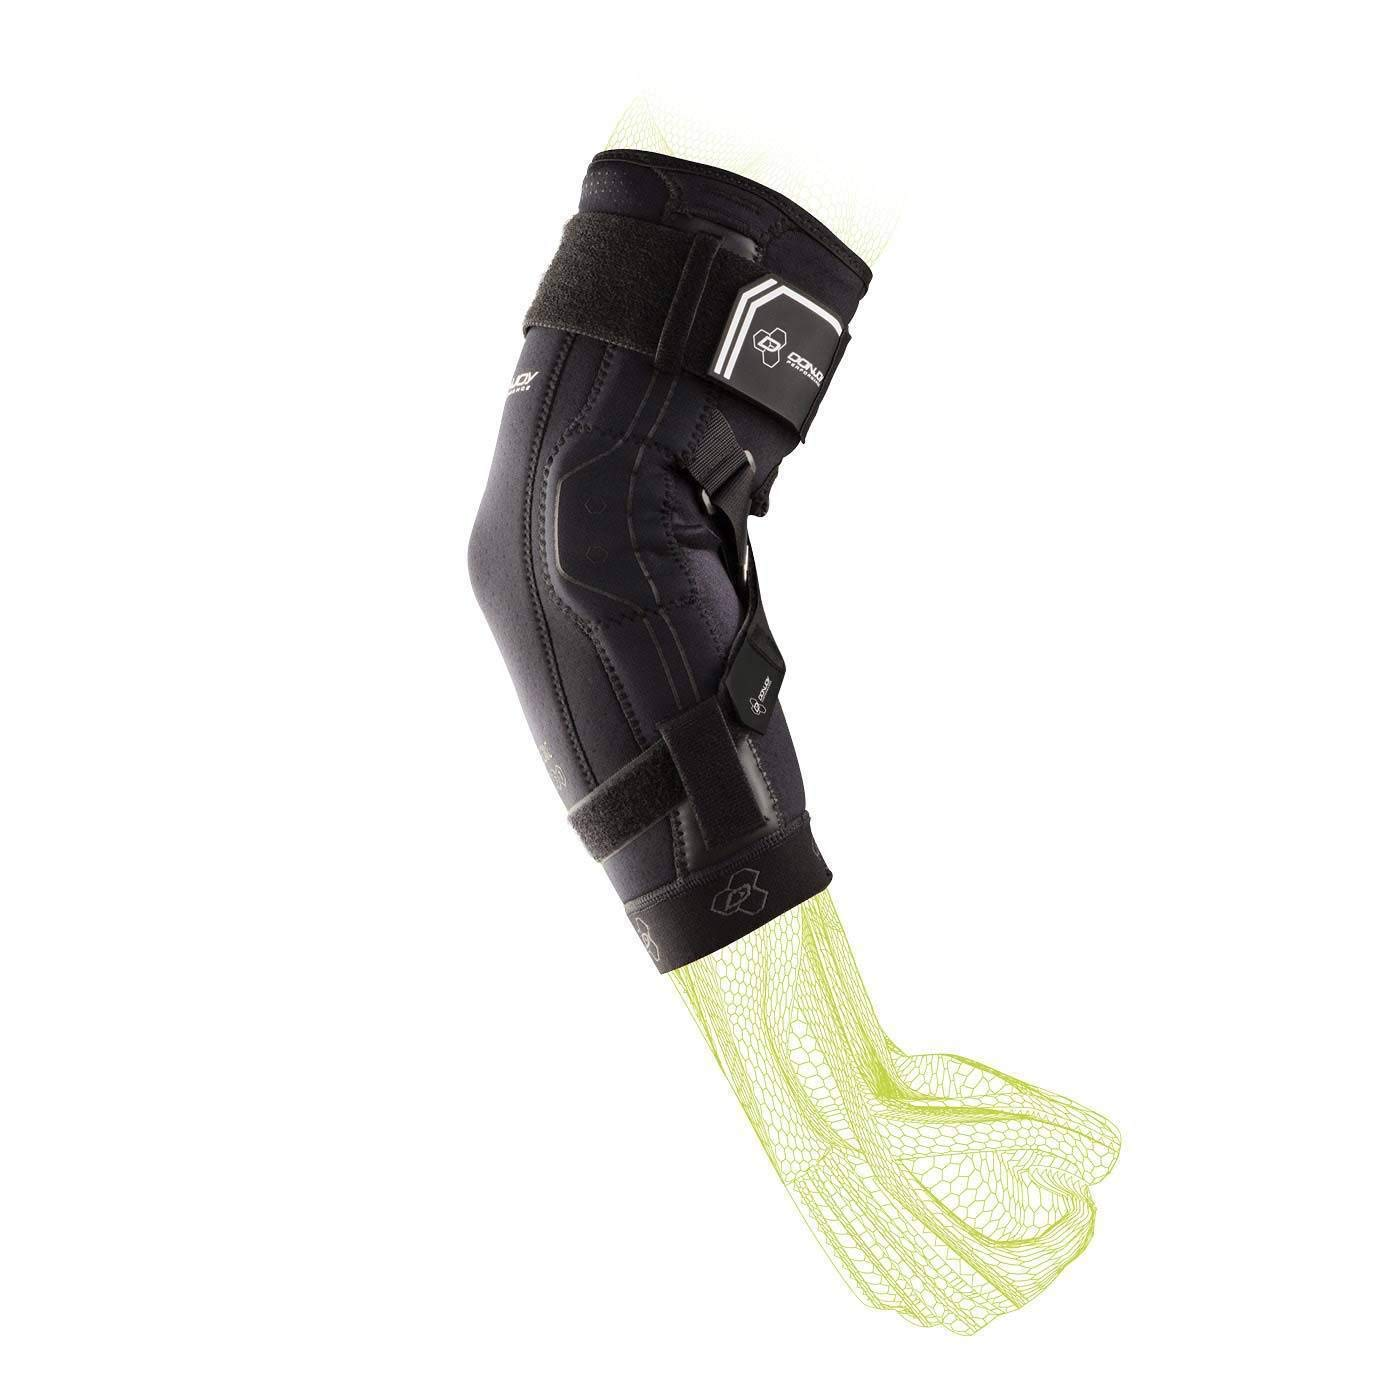 BionicTM Elbow Brace II - Small by DonJoy Performance